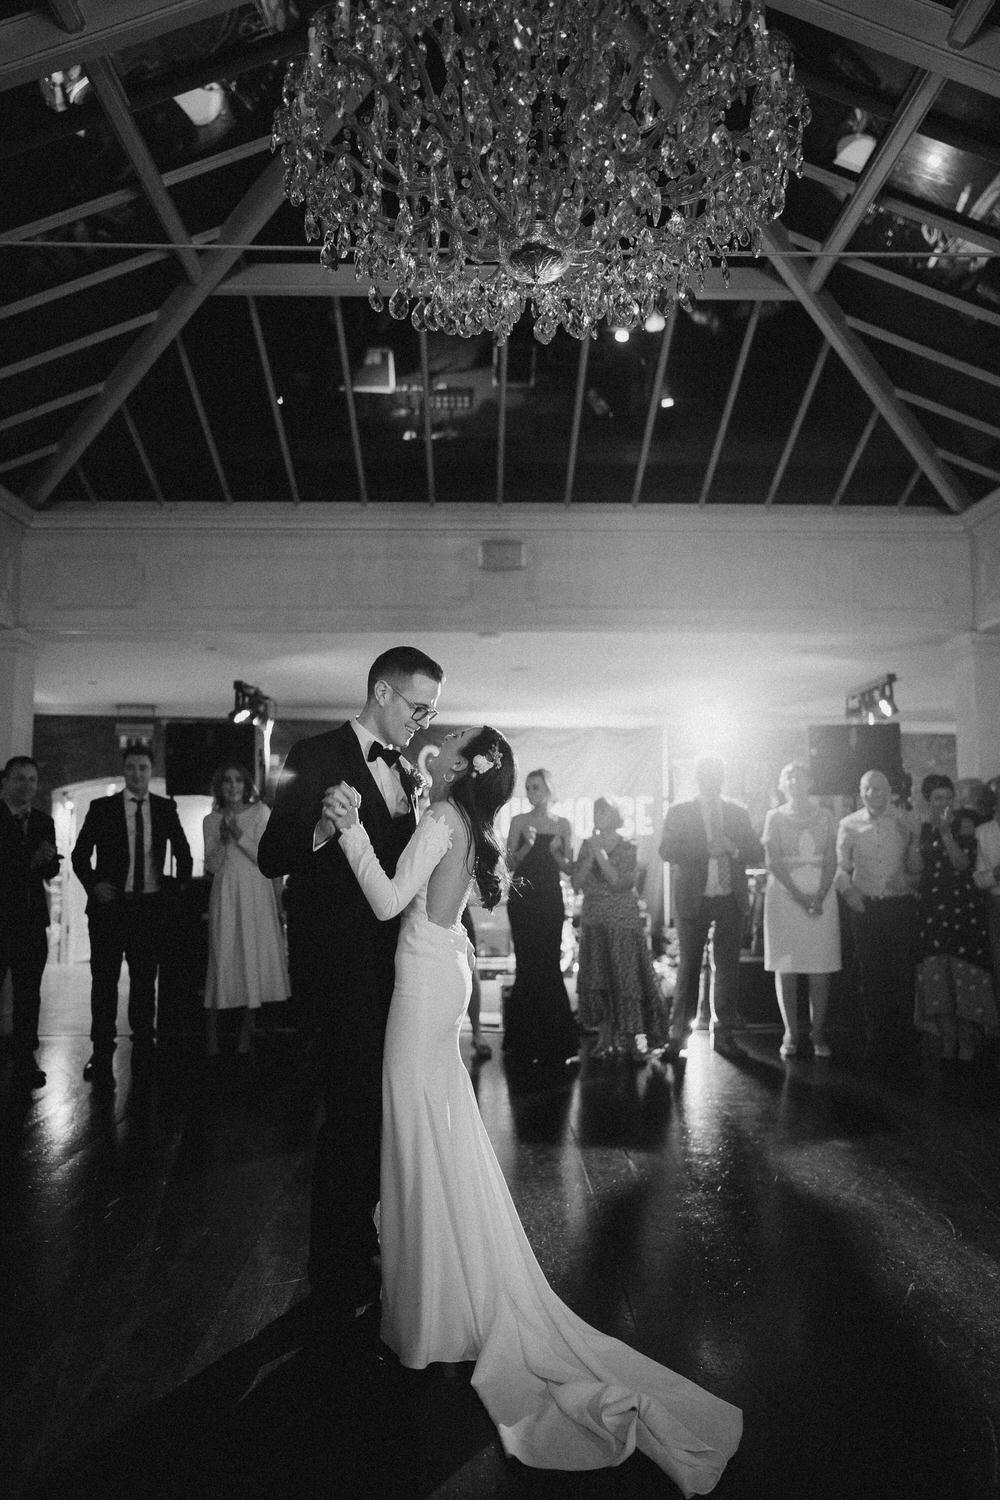 Black&White wedding frames - basis of the photography 50